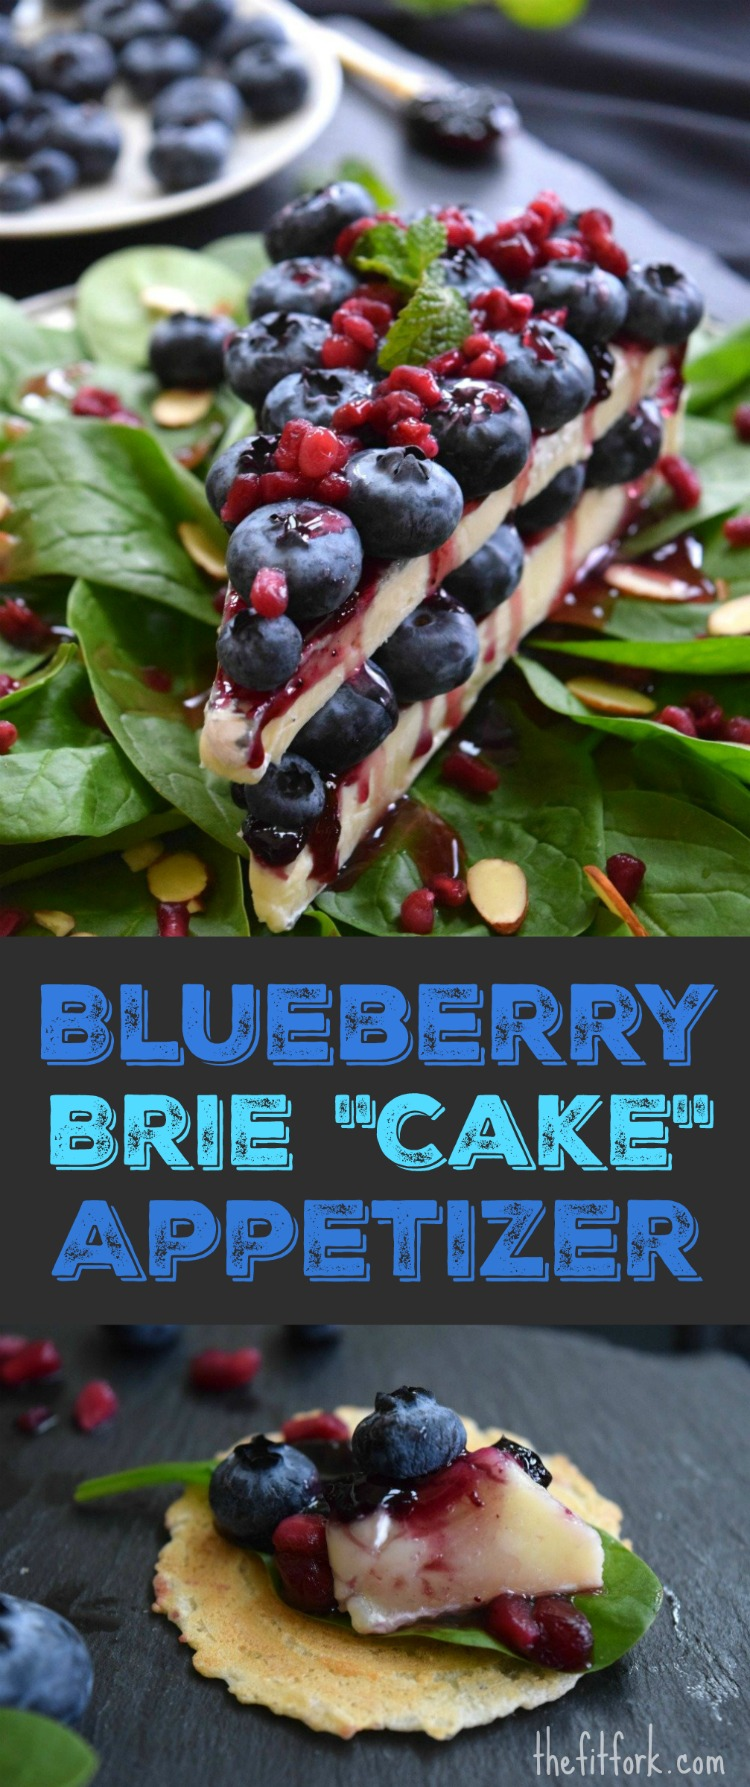 """Blueberry Brie Cheese """"Cake"""" Appetizer is a fun, flavorful and festive cheese appetizer for a cocktail party or prelude to dinner! Since it looks like a slice of sweet cheesecake, this sweet-savory recipe will be a real conversation starter for all your entertaining."""